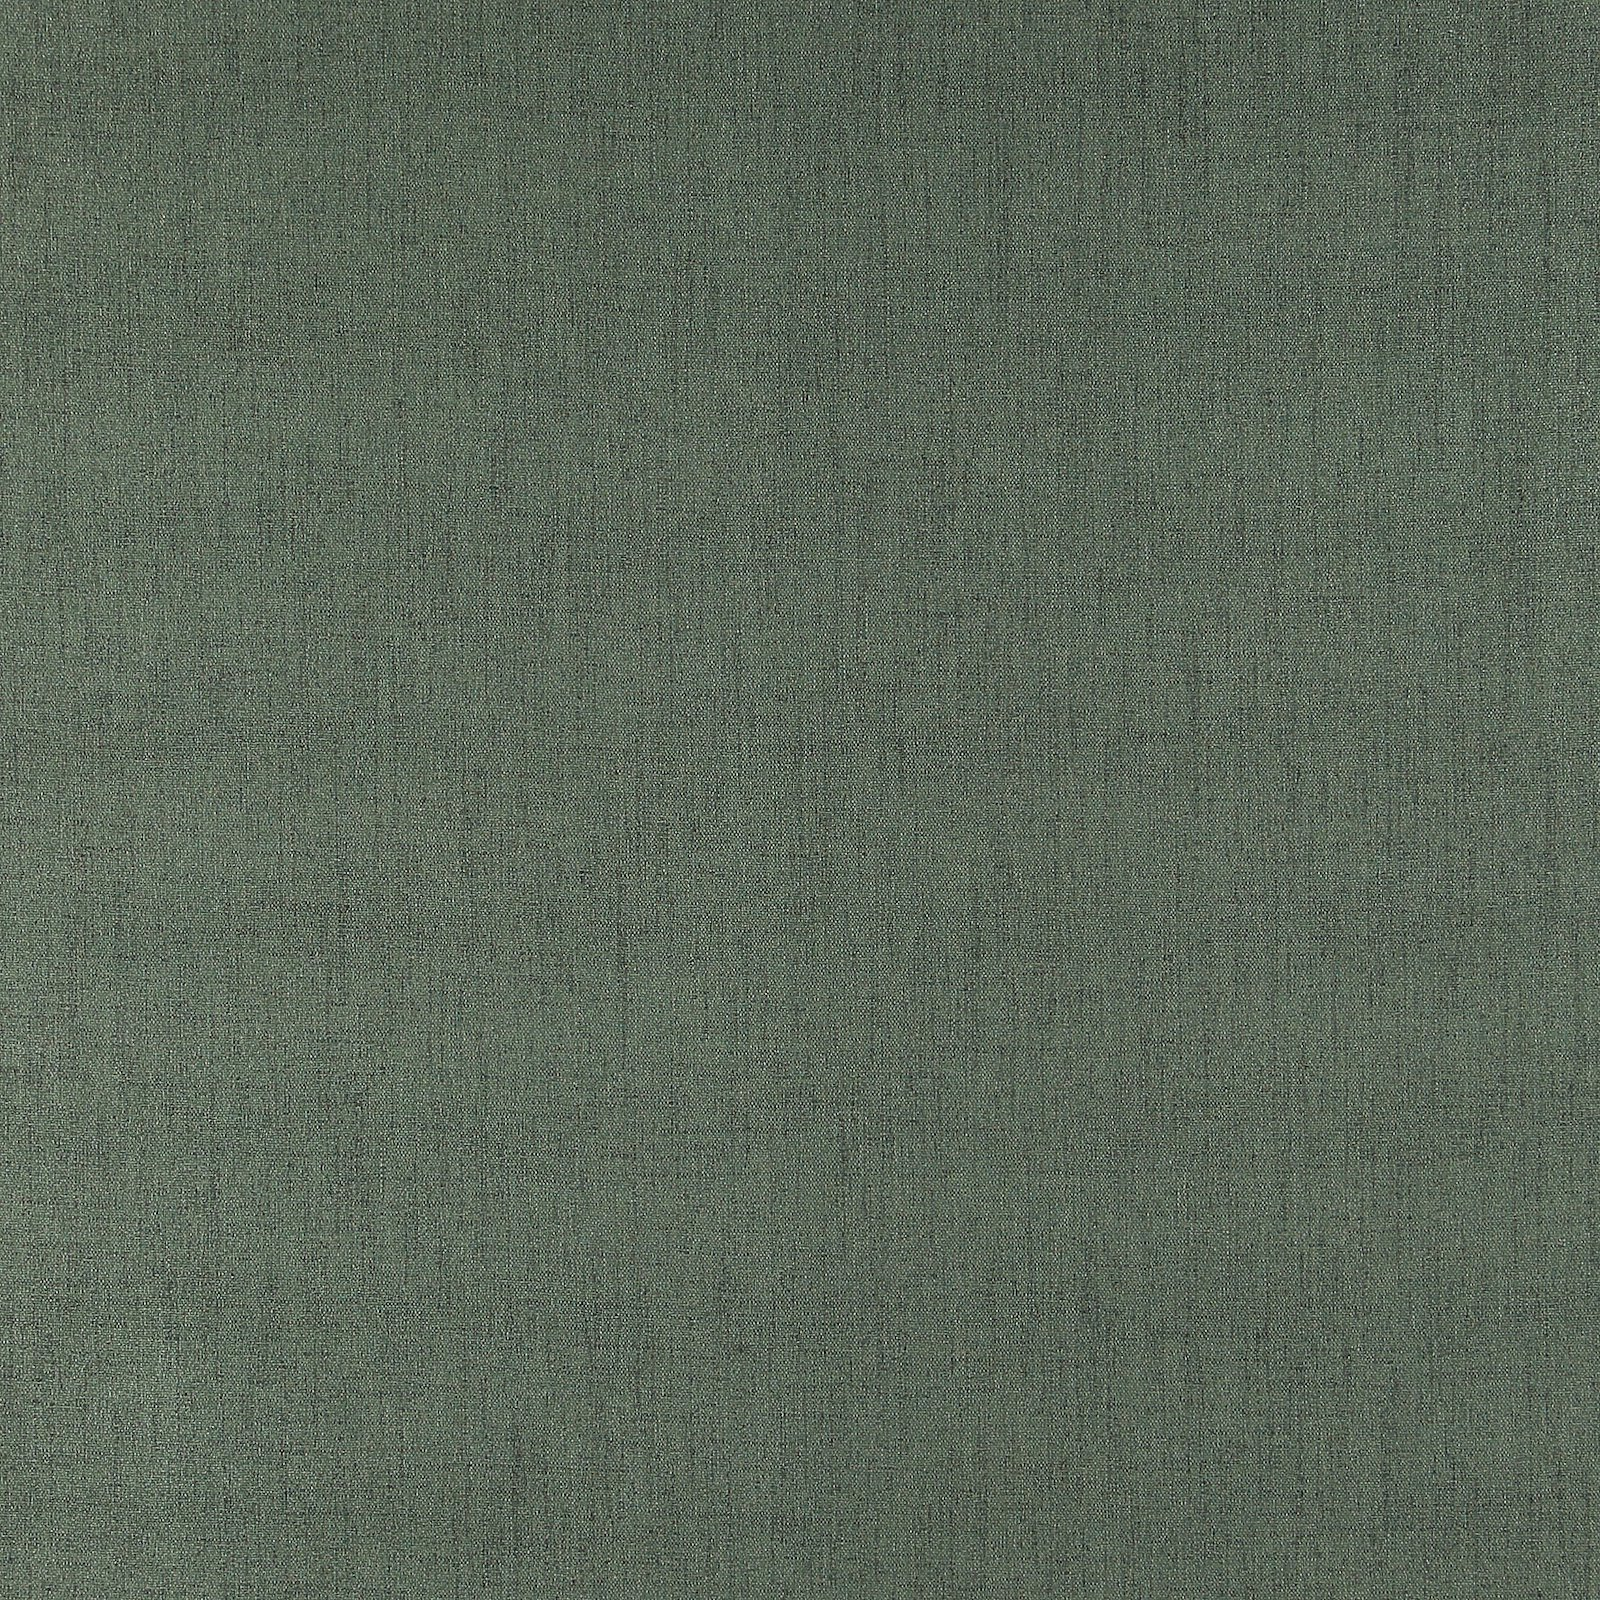 Upholstery fabric dark green w/backing 824087_pack_solid